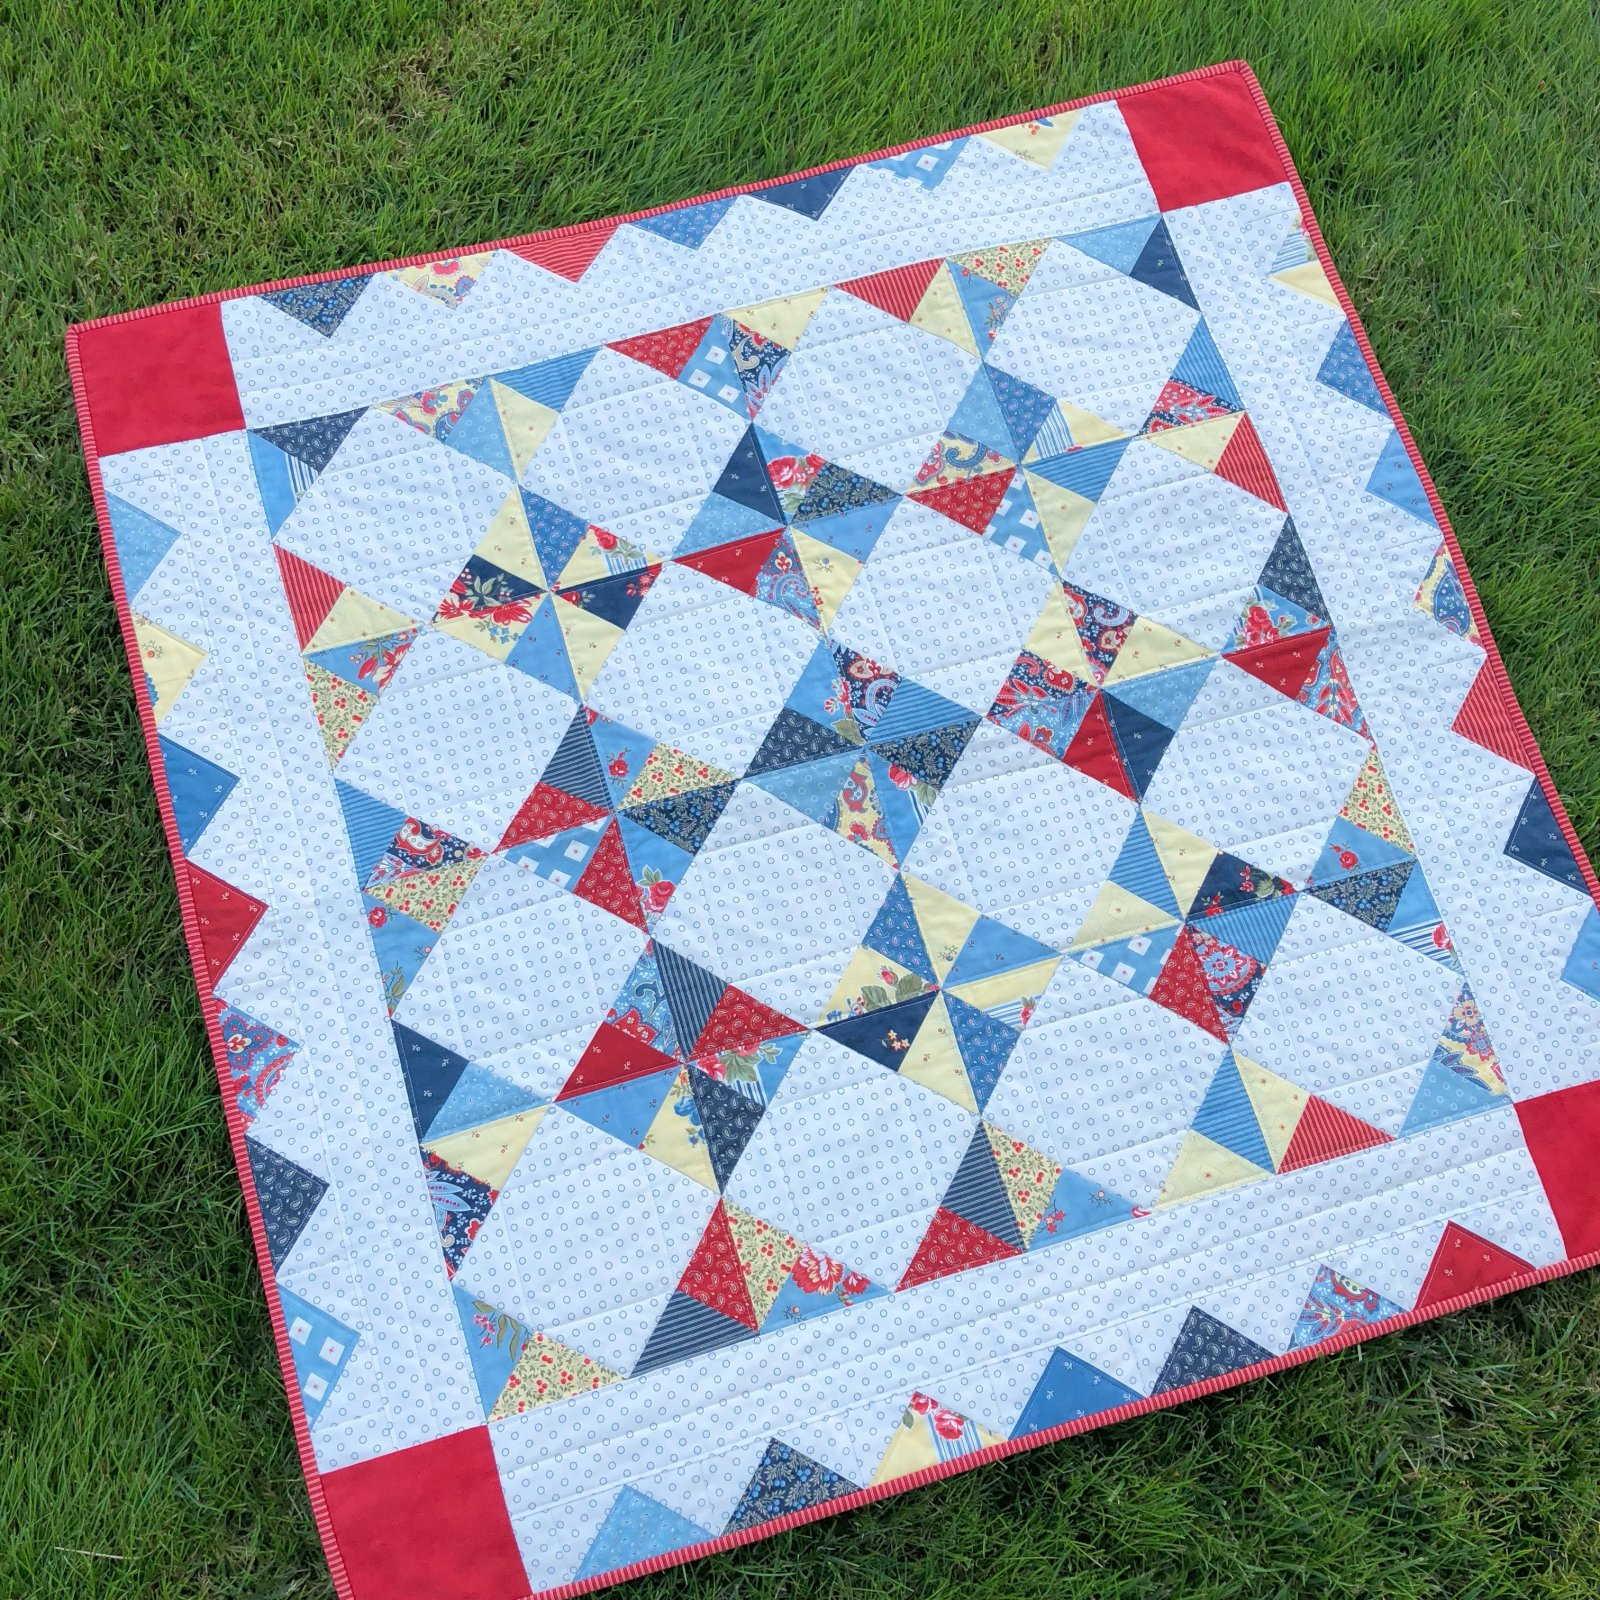 Charmalicious Quilt Kit